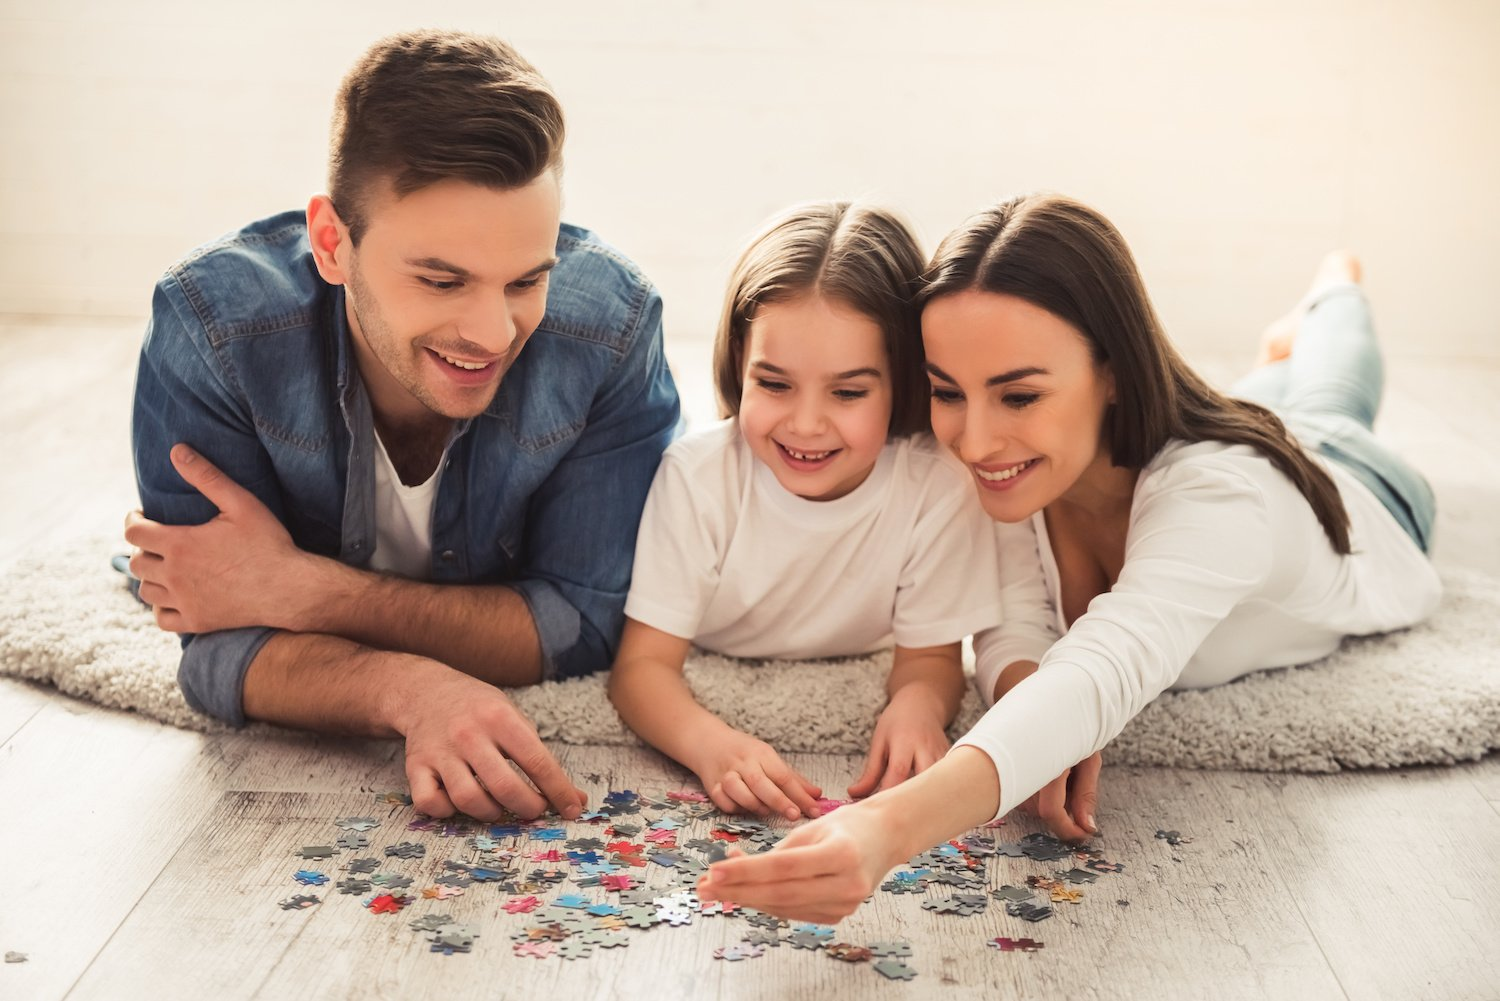 family-puzzle-cognitive-development